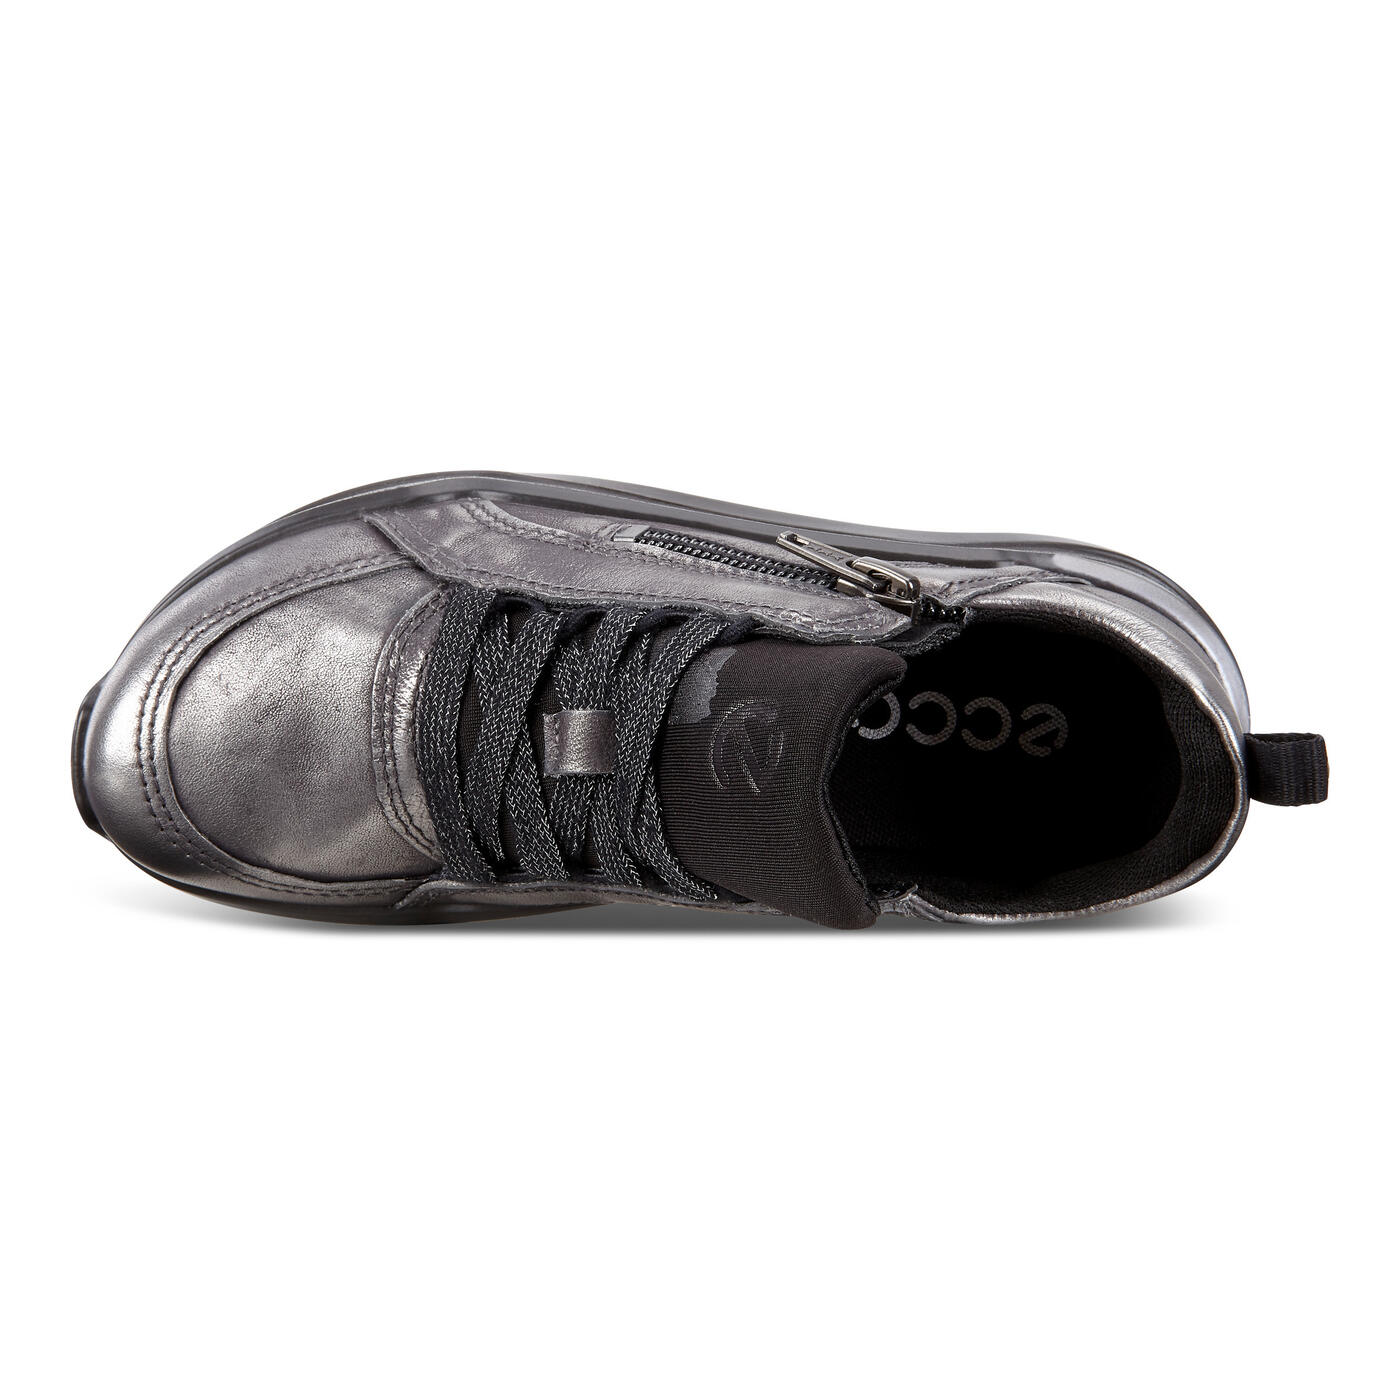 ECCO INTERVENE KIDS SHOES